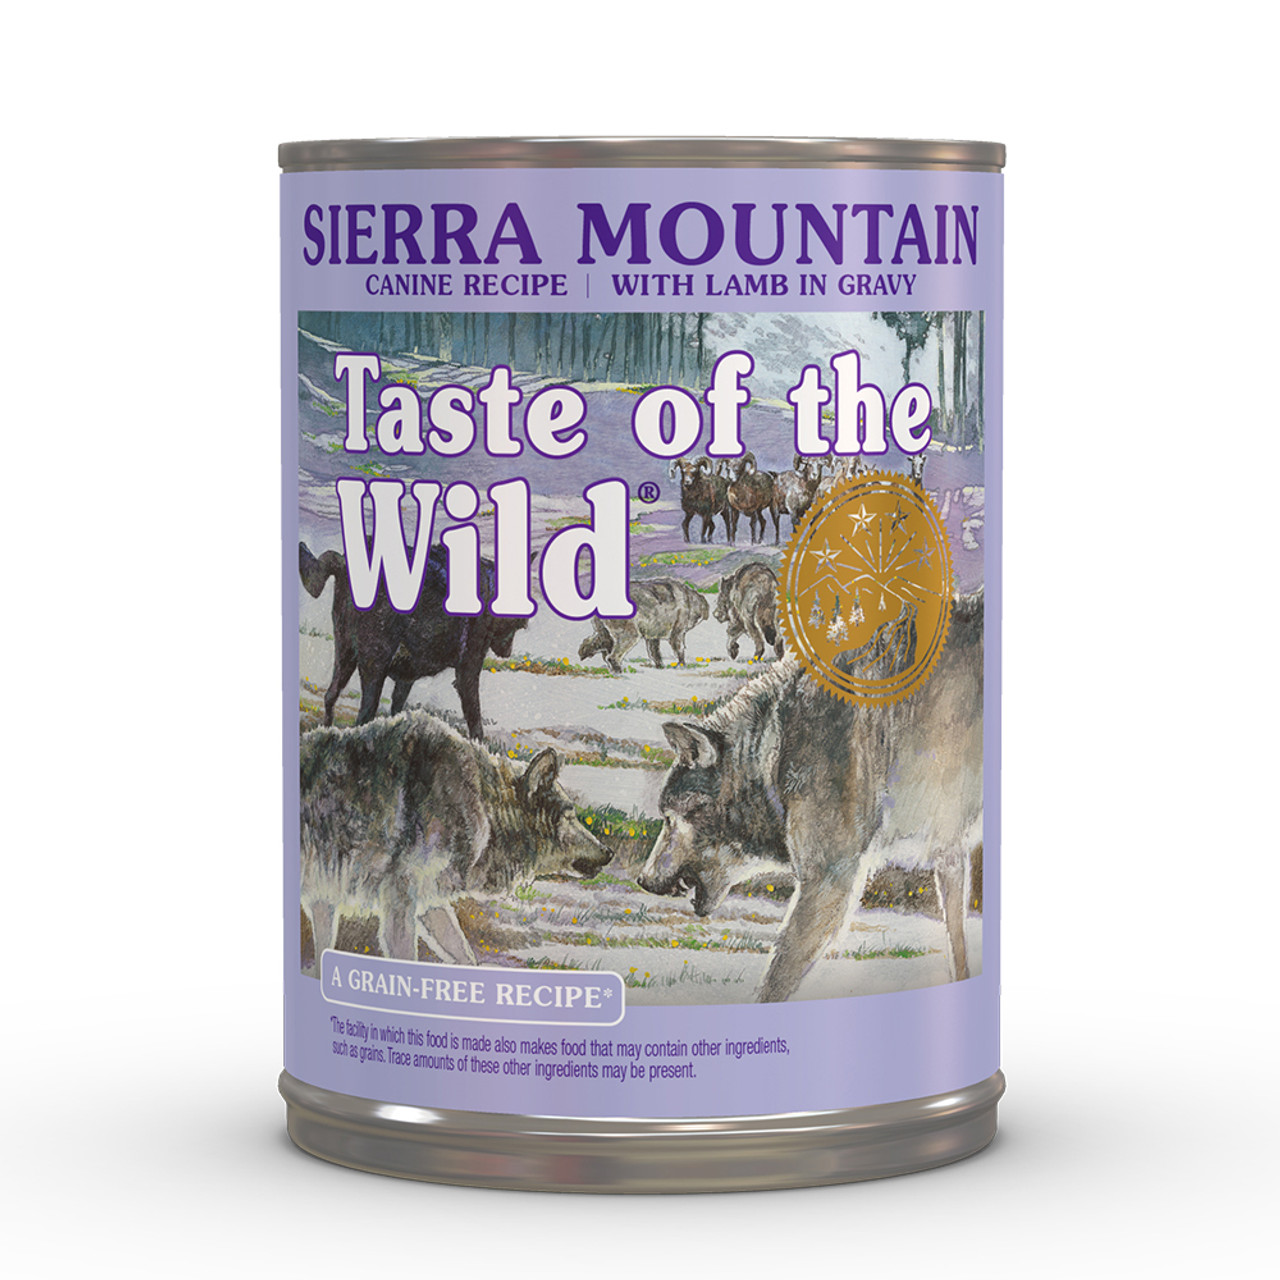 Taste of the Wild Sierra Mountain Canine Formula Canned Dog Food - Front